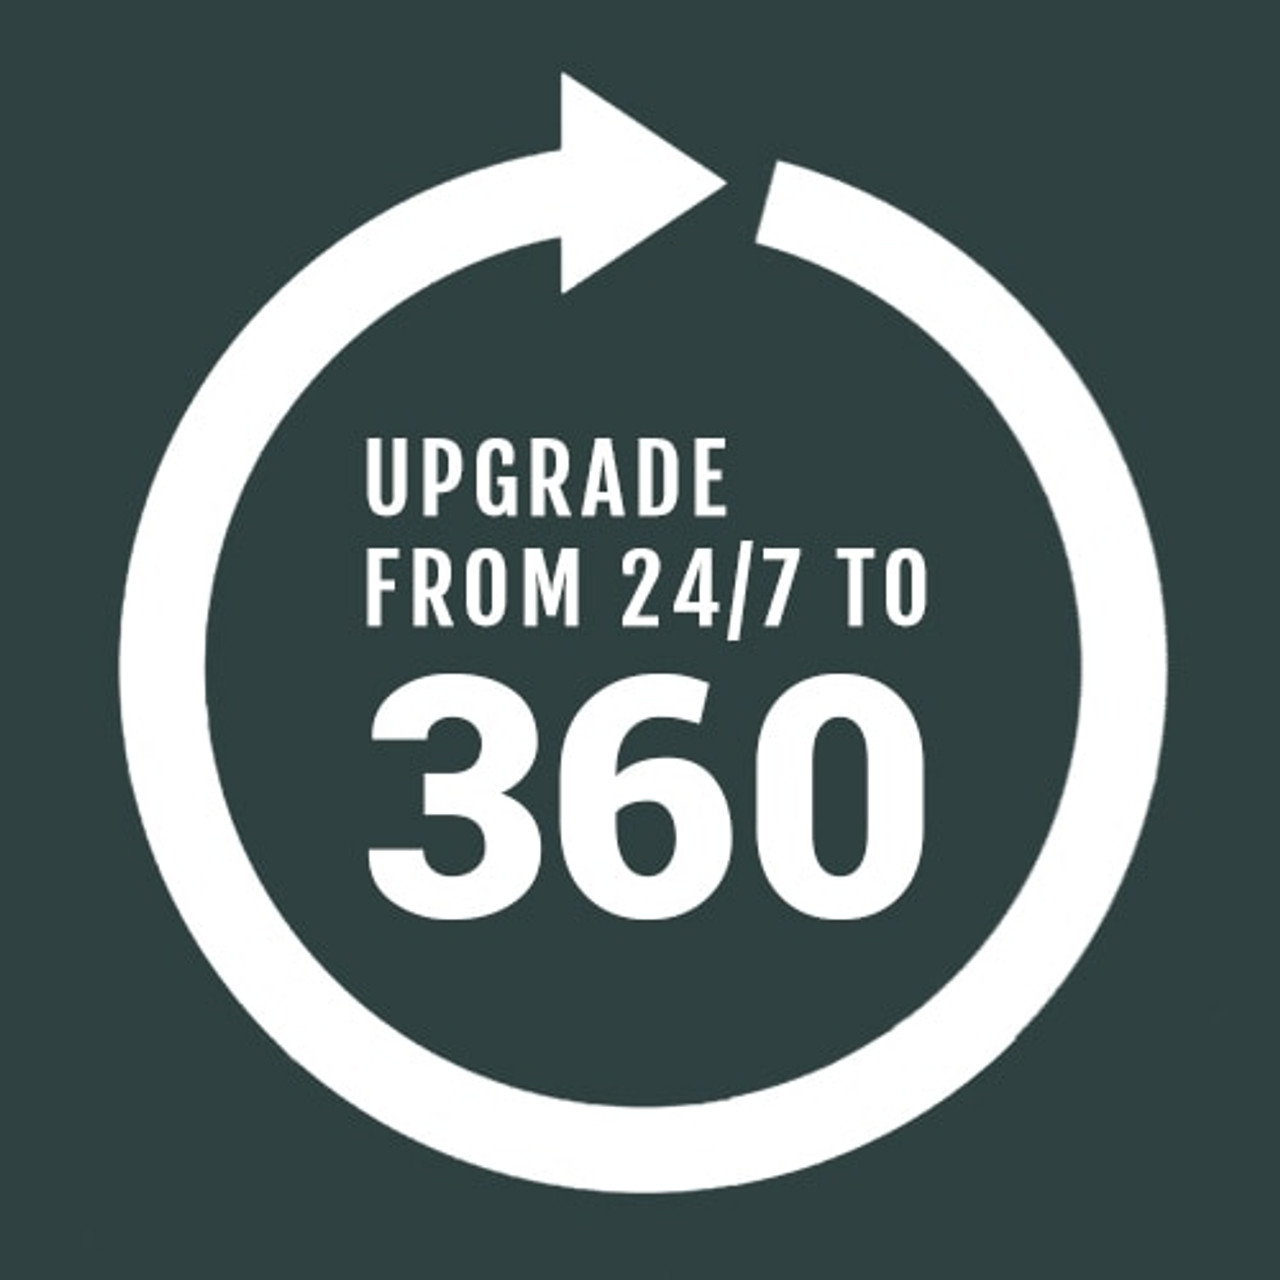 FortiGate-50E - FortiCare 360 Contract (24x7 FortiCare plus Advanced Support ticket handling & Health Check Monthly Reports; Collector included with Setup & Administration) - 36 months